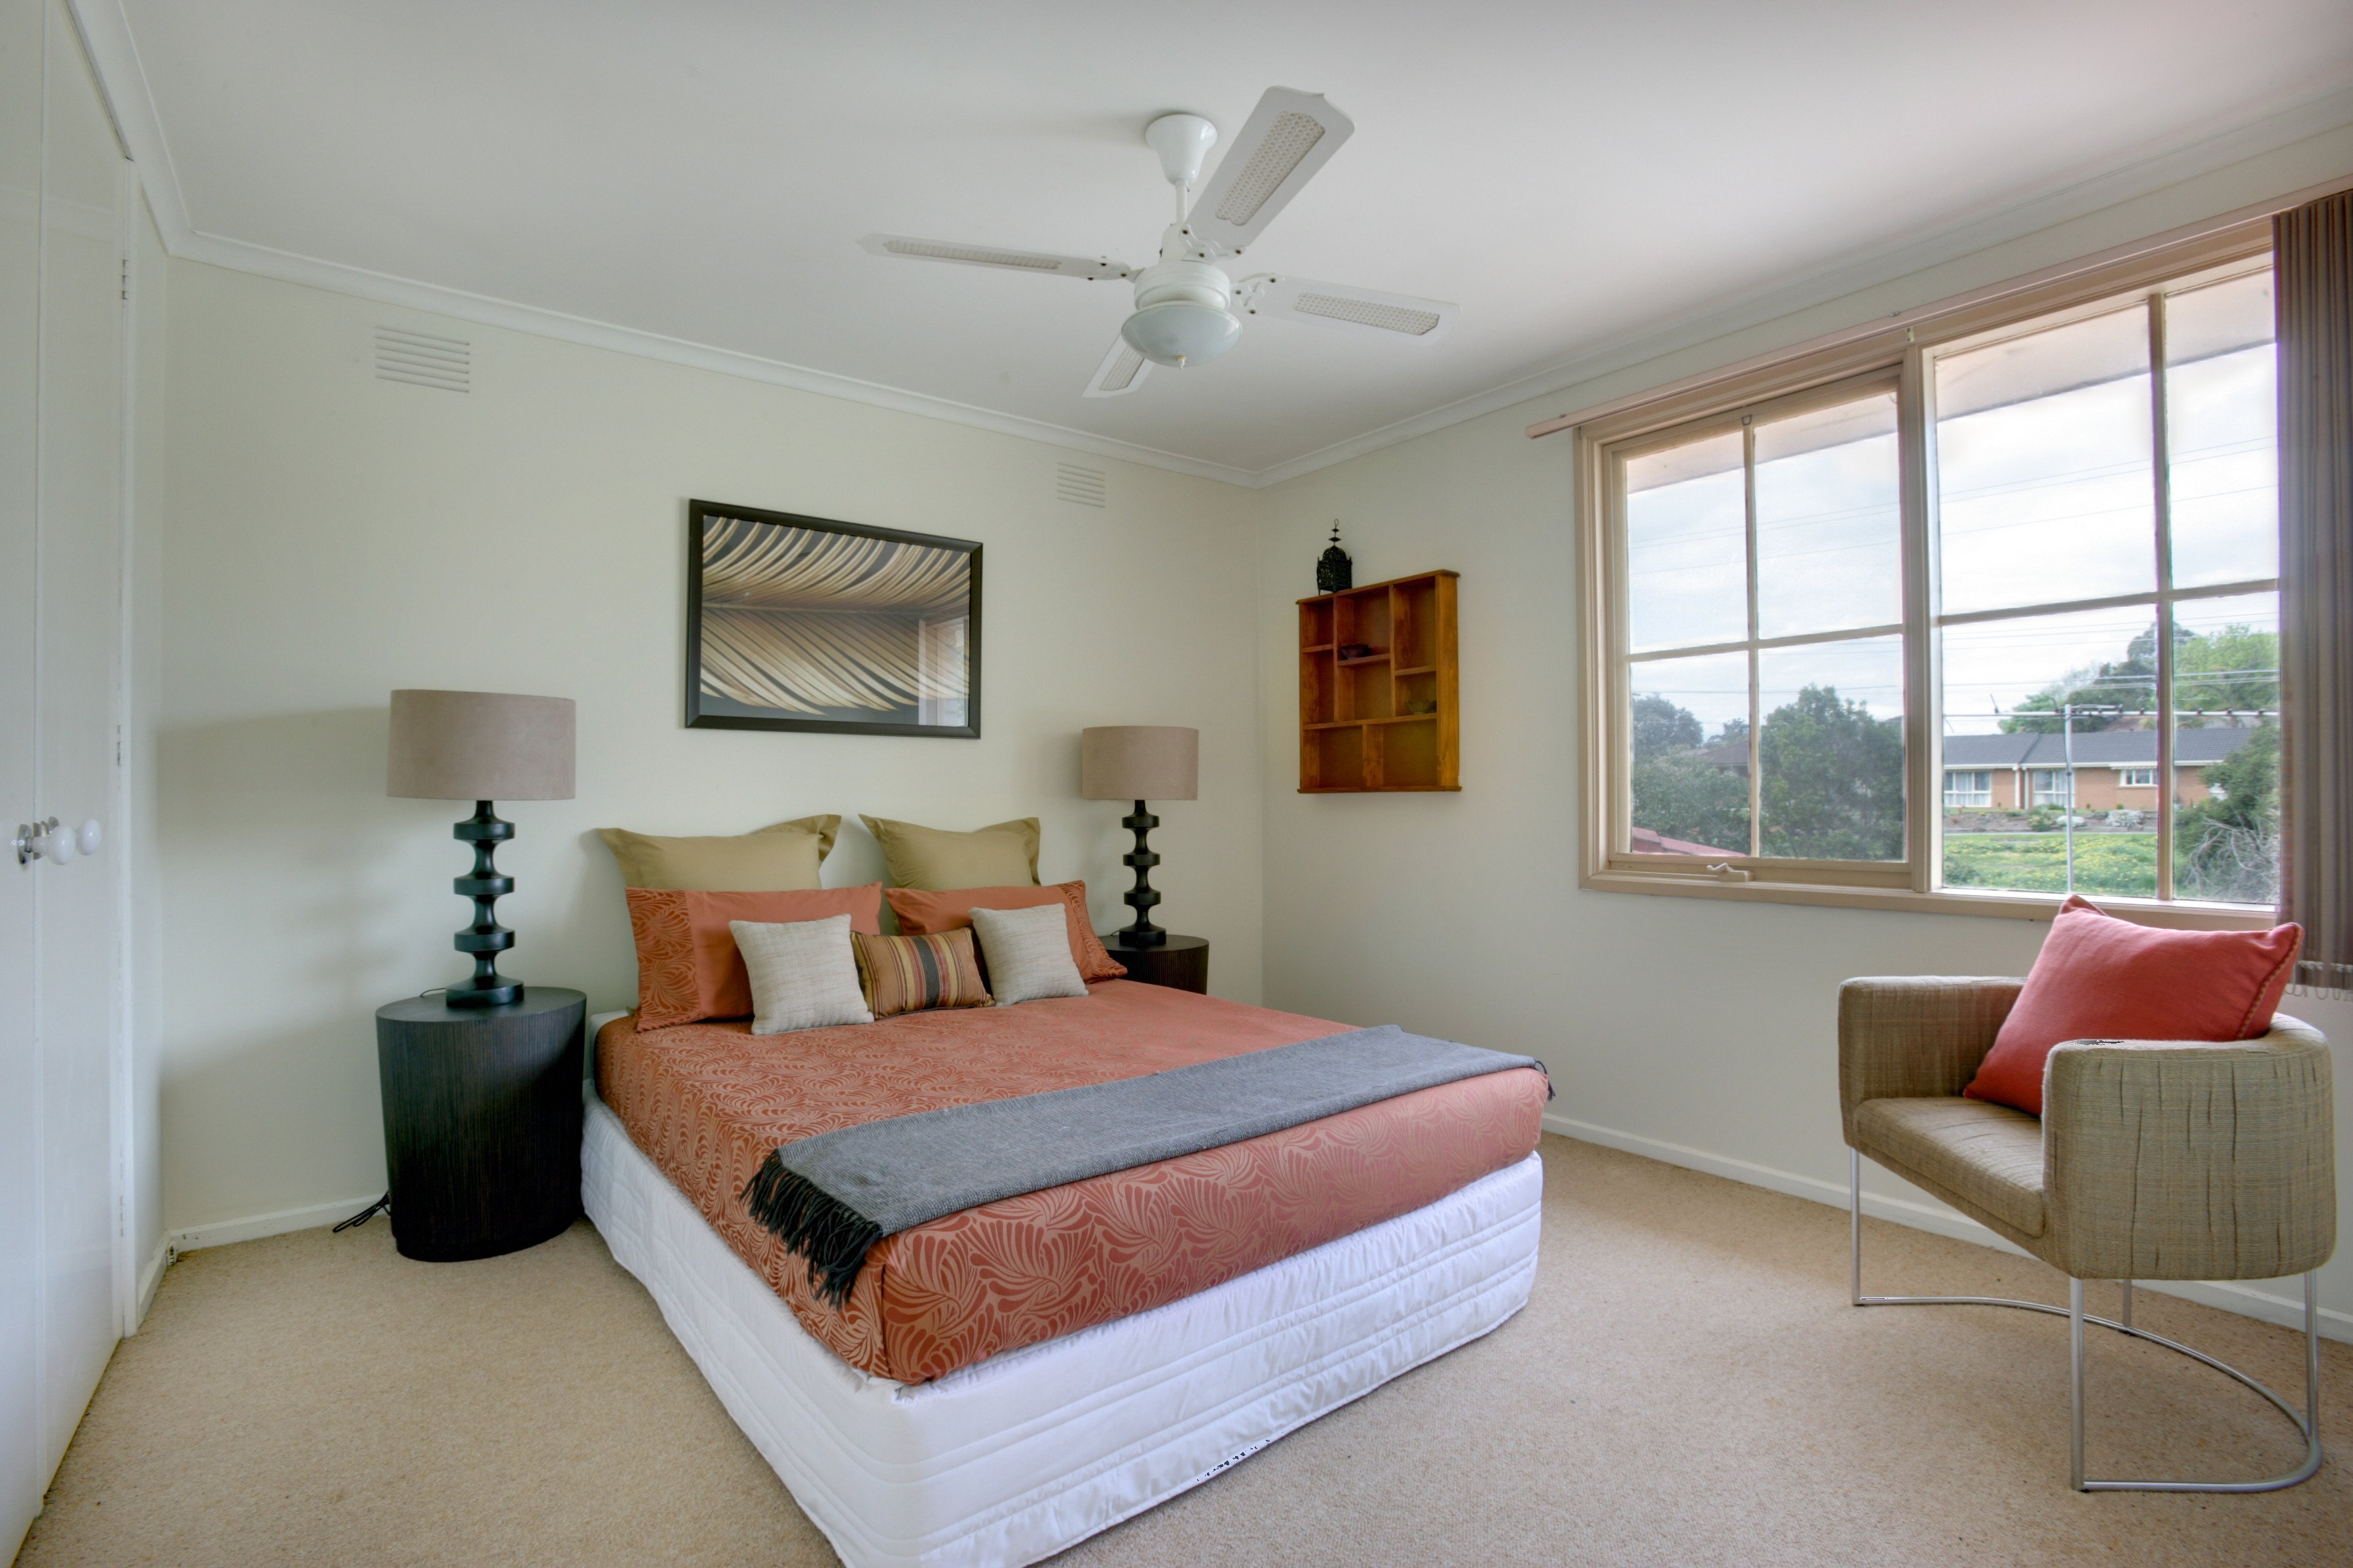 How to organize A Bedroom Beautiful Tips How to Remodel Your Bedroom – Home Remodel 101